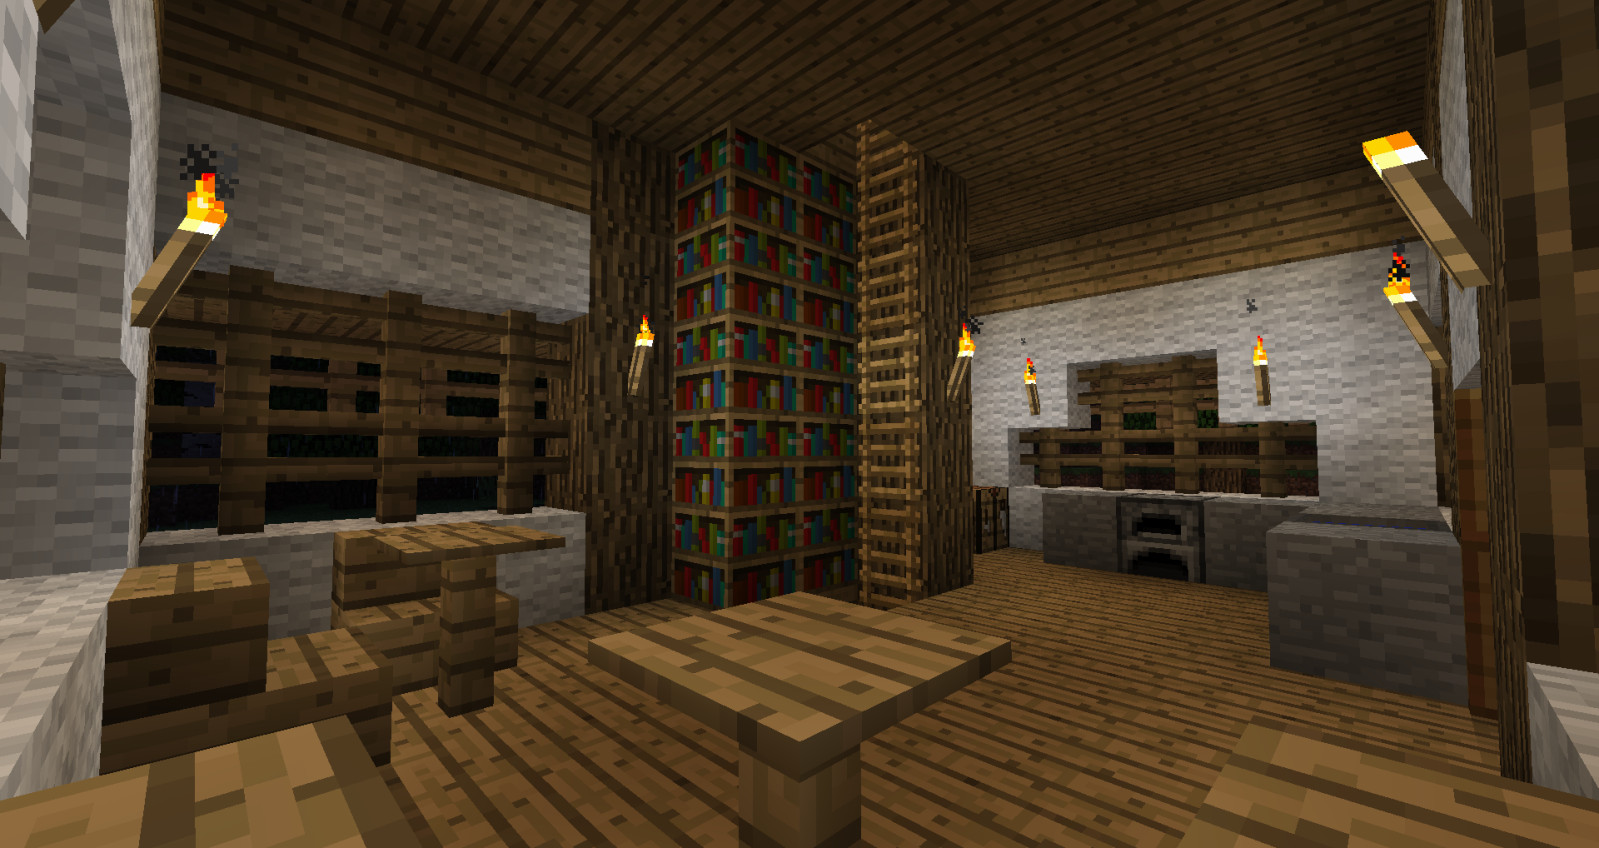 Best ideas about Minecraft Basement Ideas . Save or Pin Asian Farm & Watchtower Screenshots Show Your Creation Now.